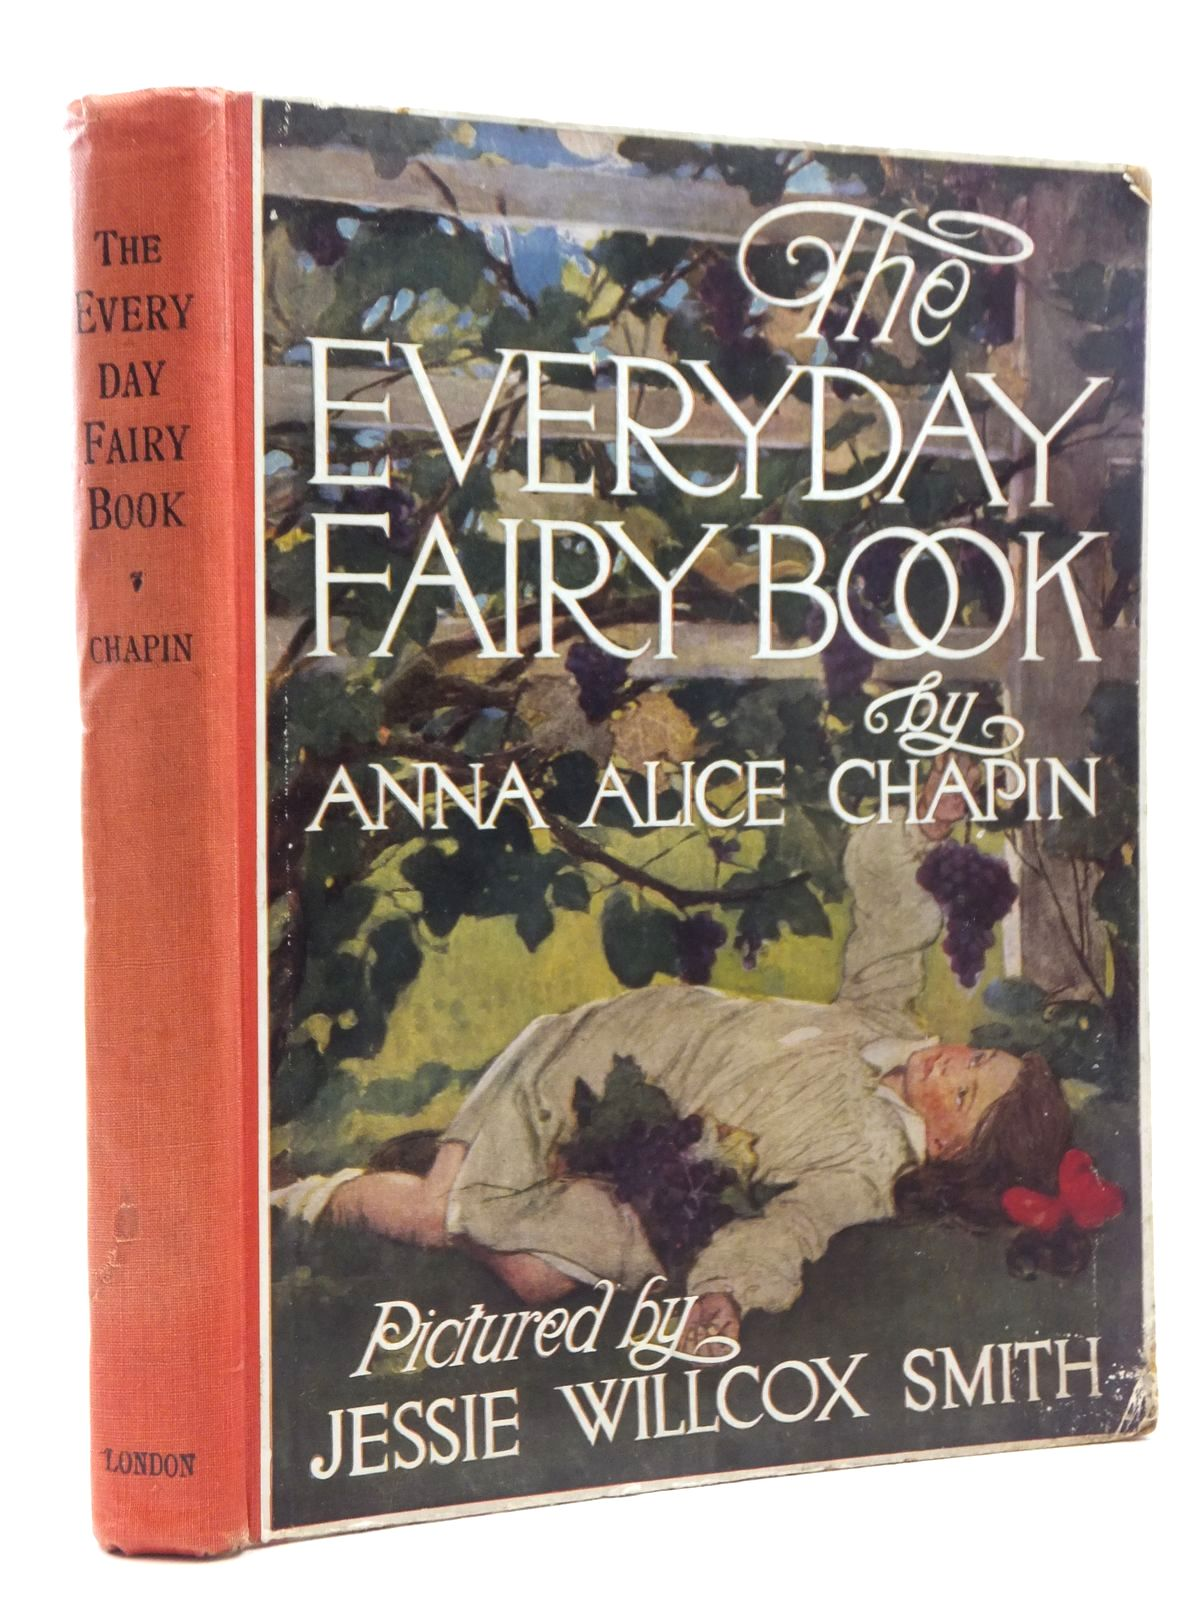 Photo of THE EVERYDAY FAIRY BOOK written by Chapin, Anna Alice illustrated by Smith, Jessie Willcox published by J. Coker & Co. Ltd. (STOCK CODE: 1609840)  for sale by Stella & Rose's Books